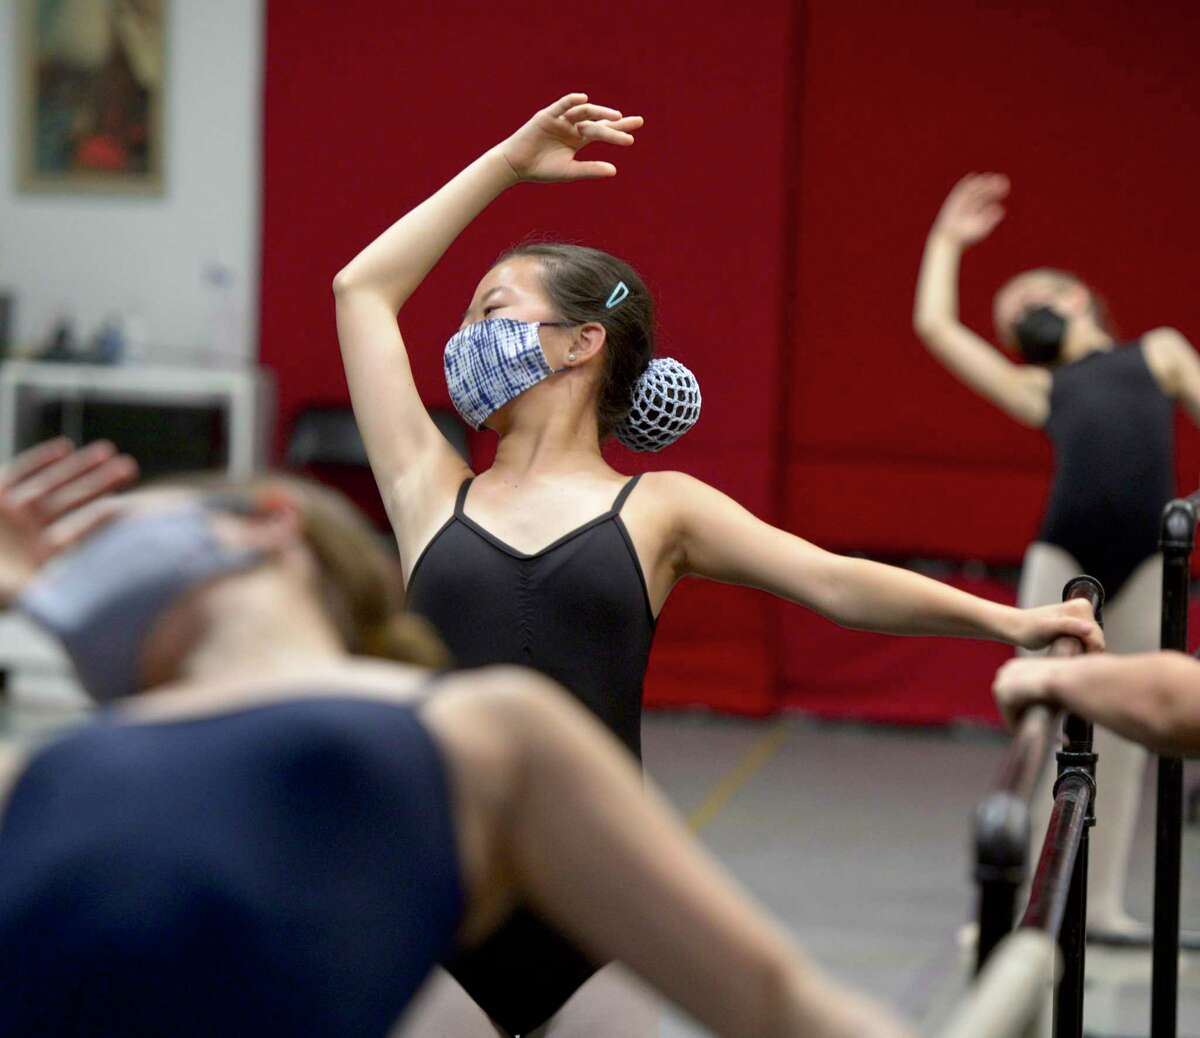 Hadley Hopke participates in a class at The Ridgefield Conservatory of Dance. The conservatory is the only nonprofit dance school in the town's designated cultural district. July 23, 2021, in Ridgefield, Conn.